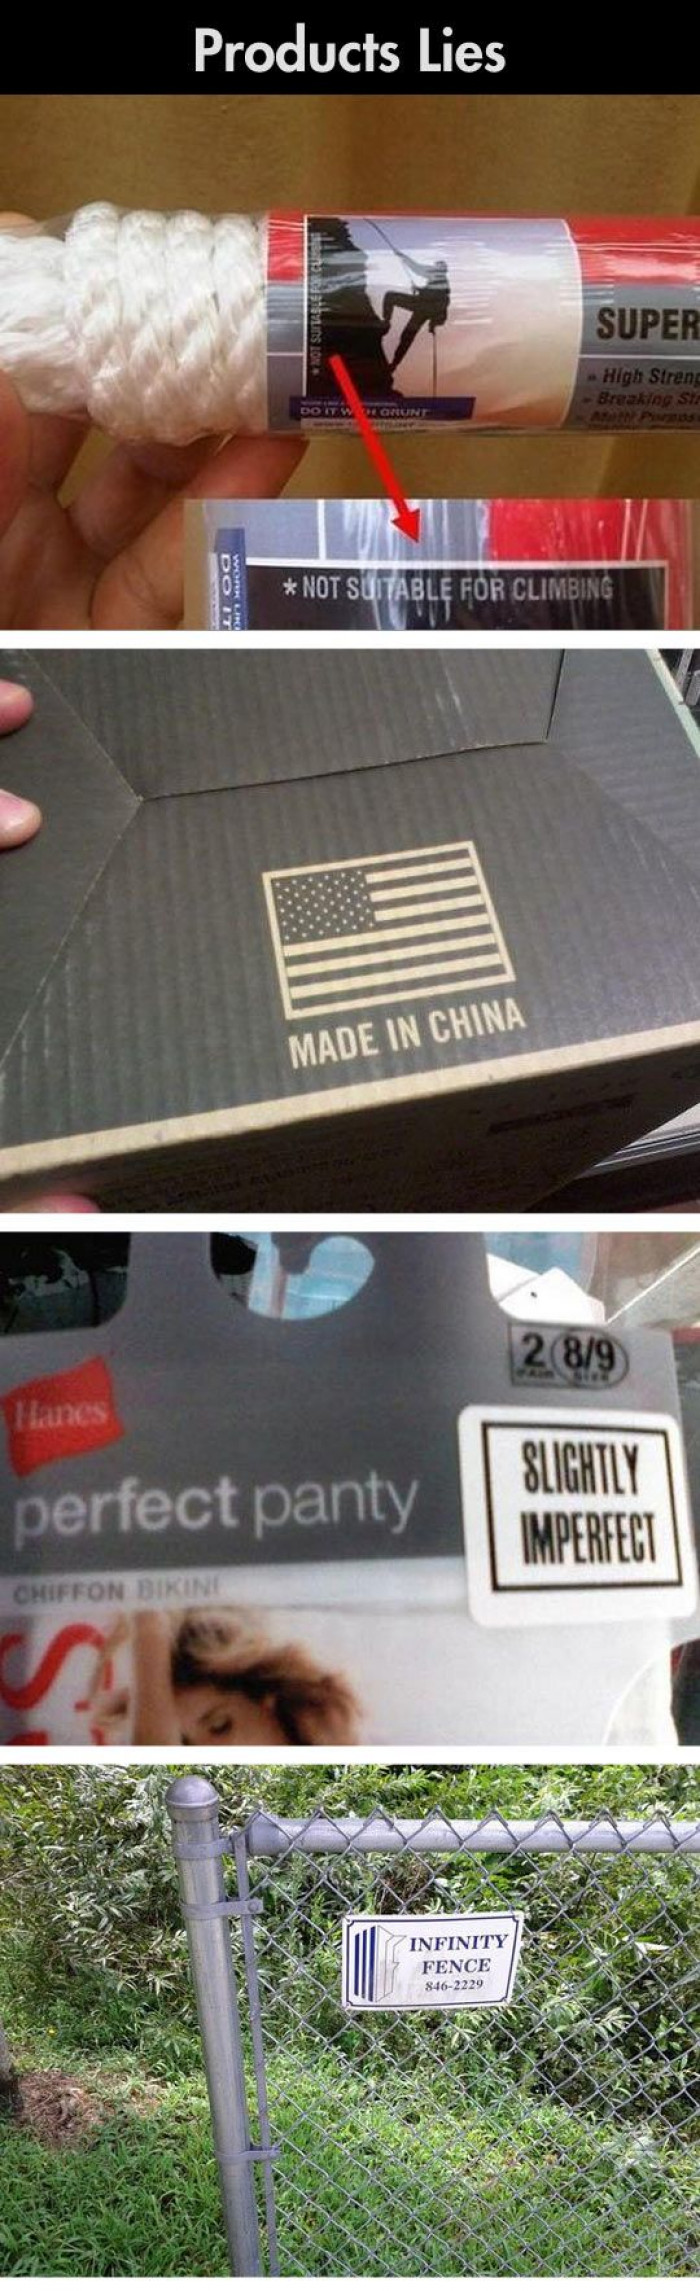 These 4 Funny Product Lies Will Make You Giggle